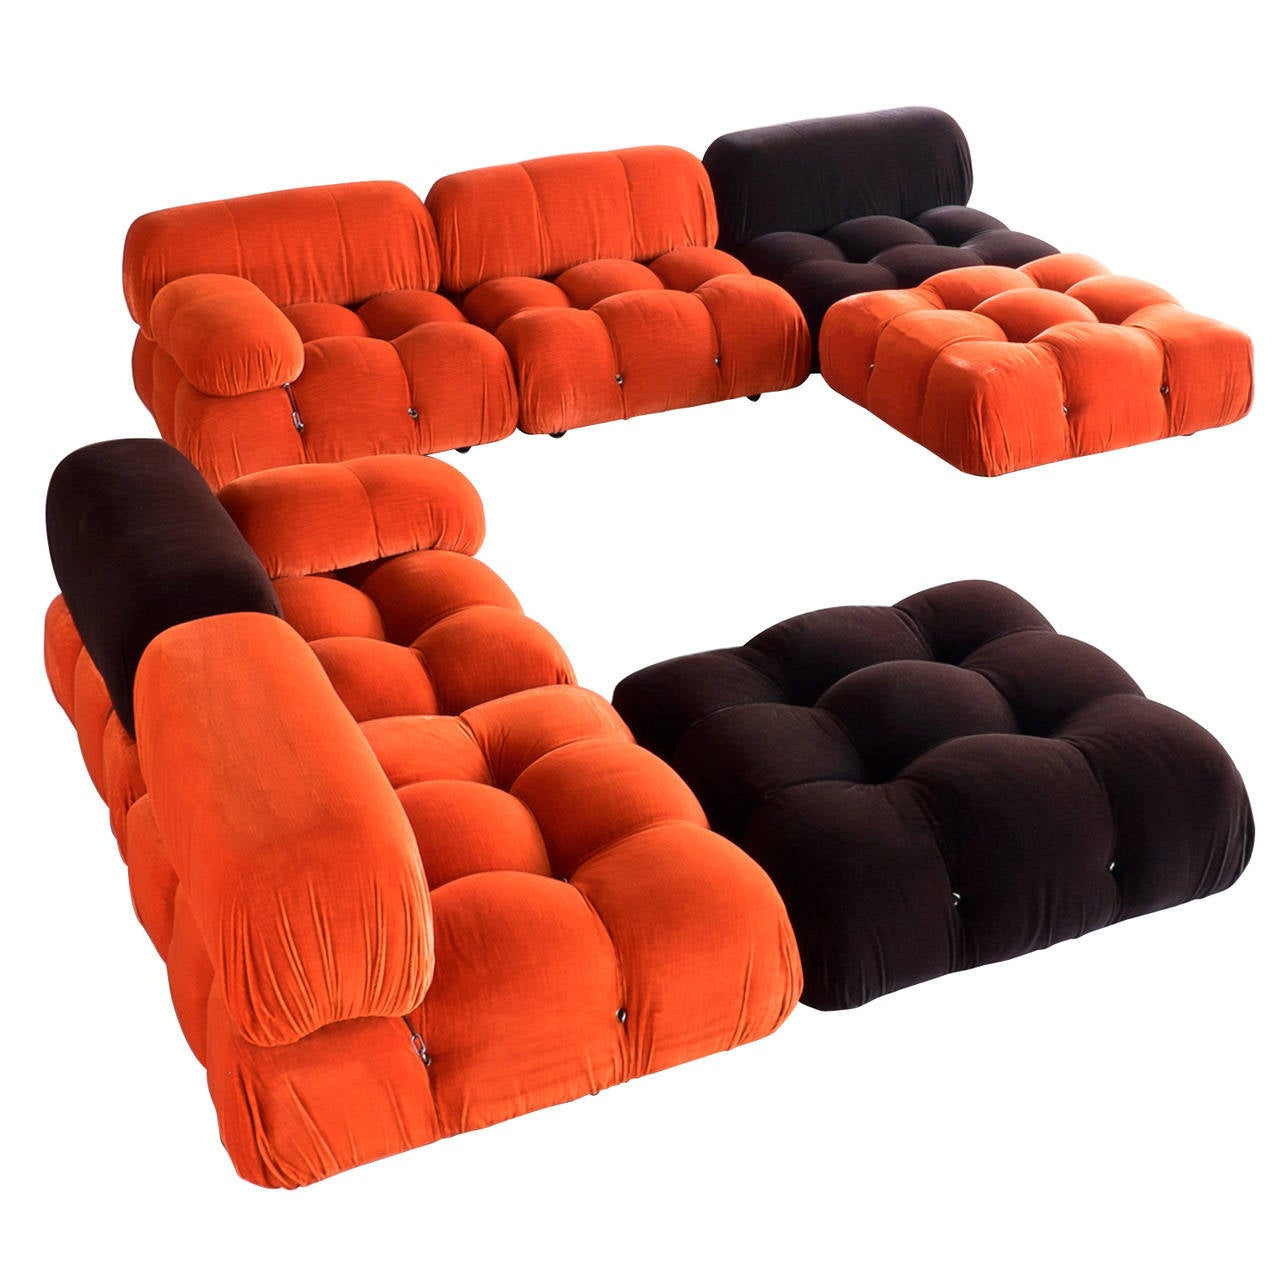 39 camaleonda 39 modular sofas by mario bellini at 1stdibs. Black Bedroom Furniture Sets. Home Design Ideas